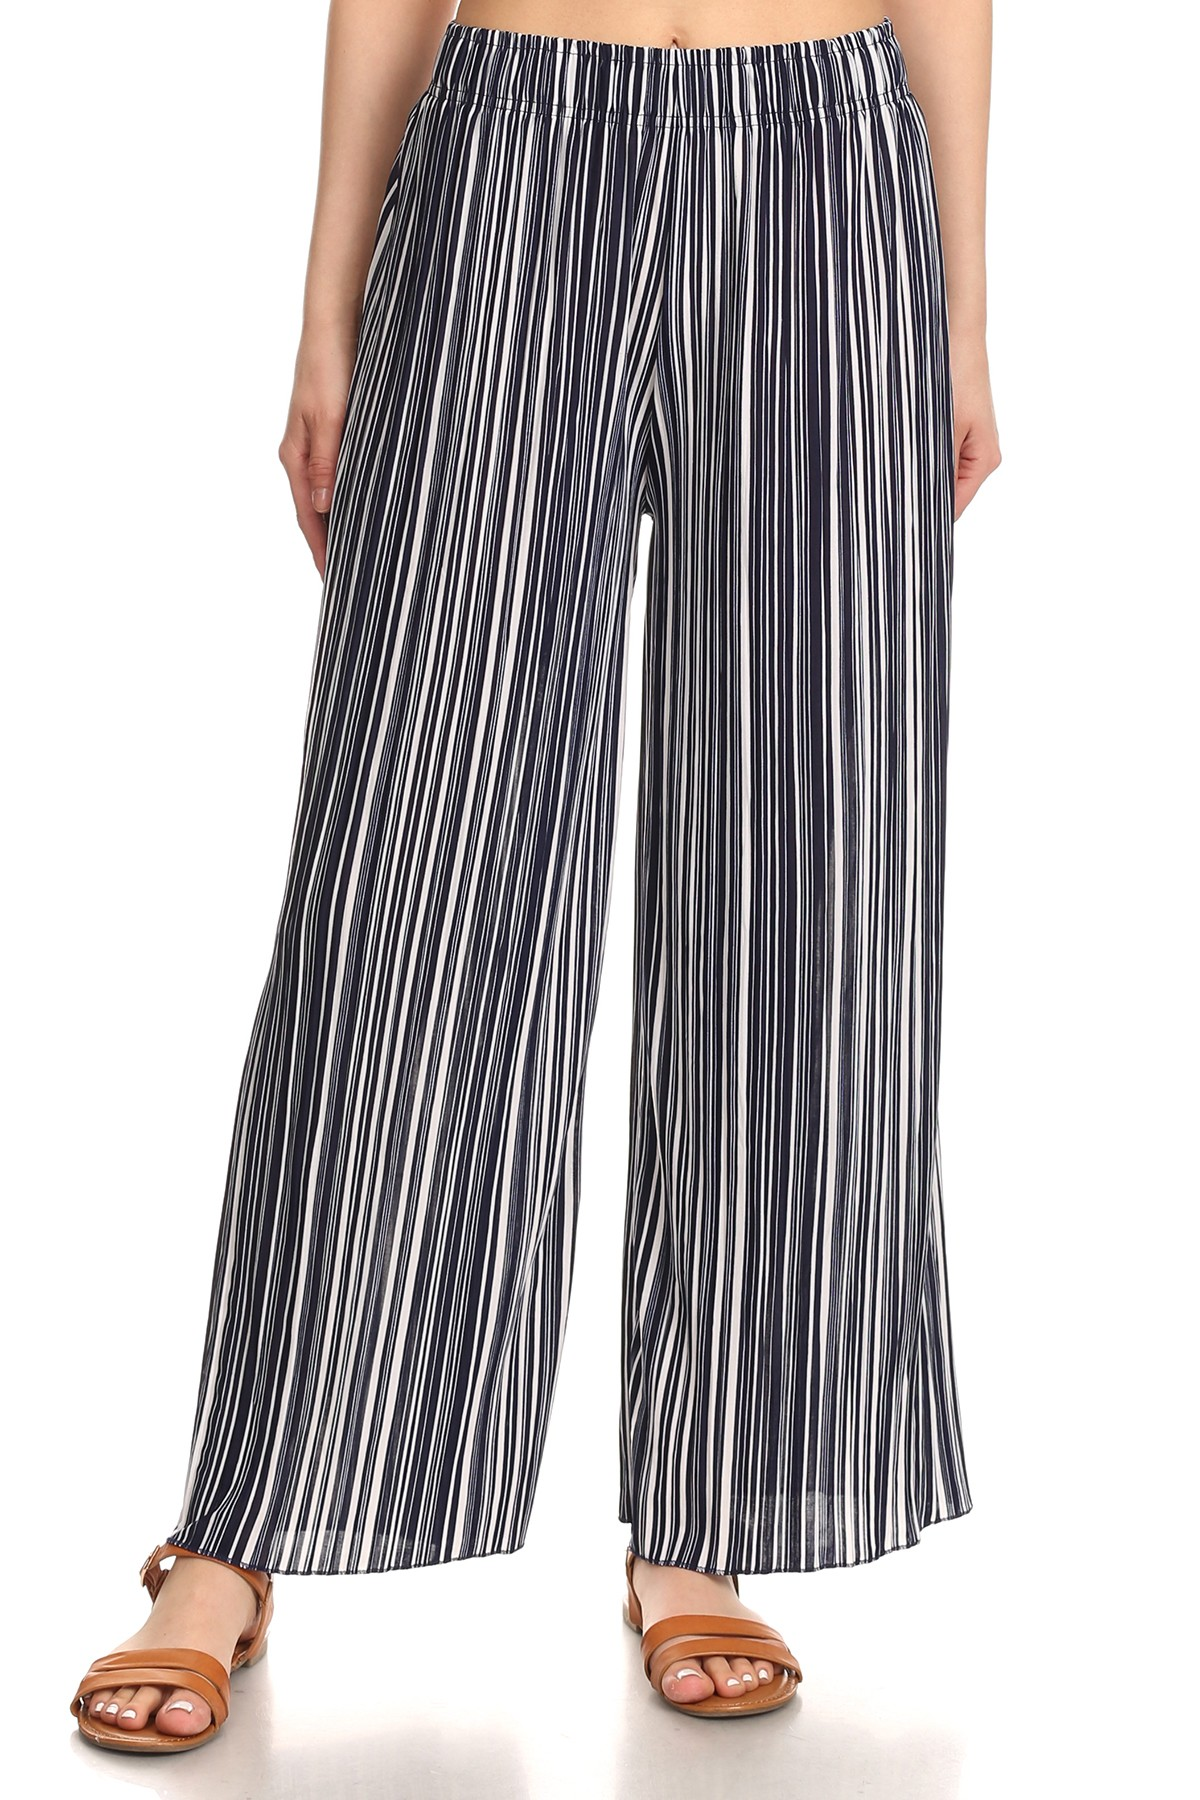 Innovative 28 Modern Ways To Wear Palazzo Pants With Other Outfits